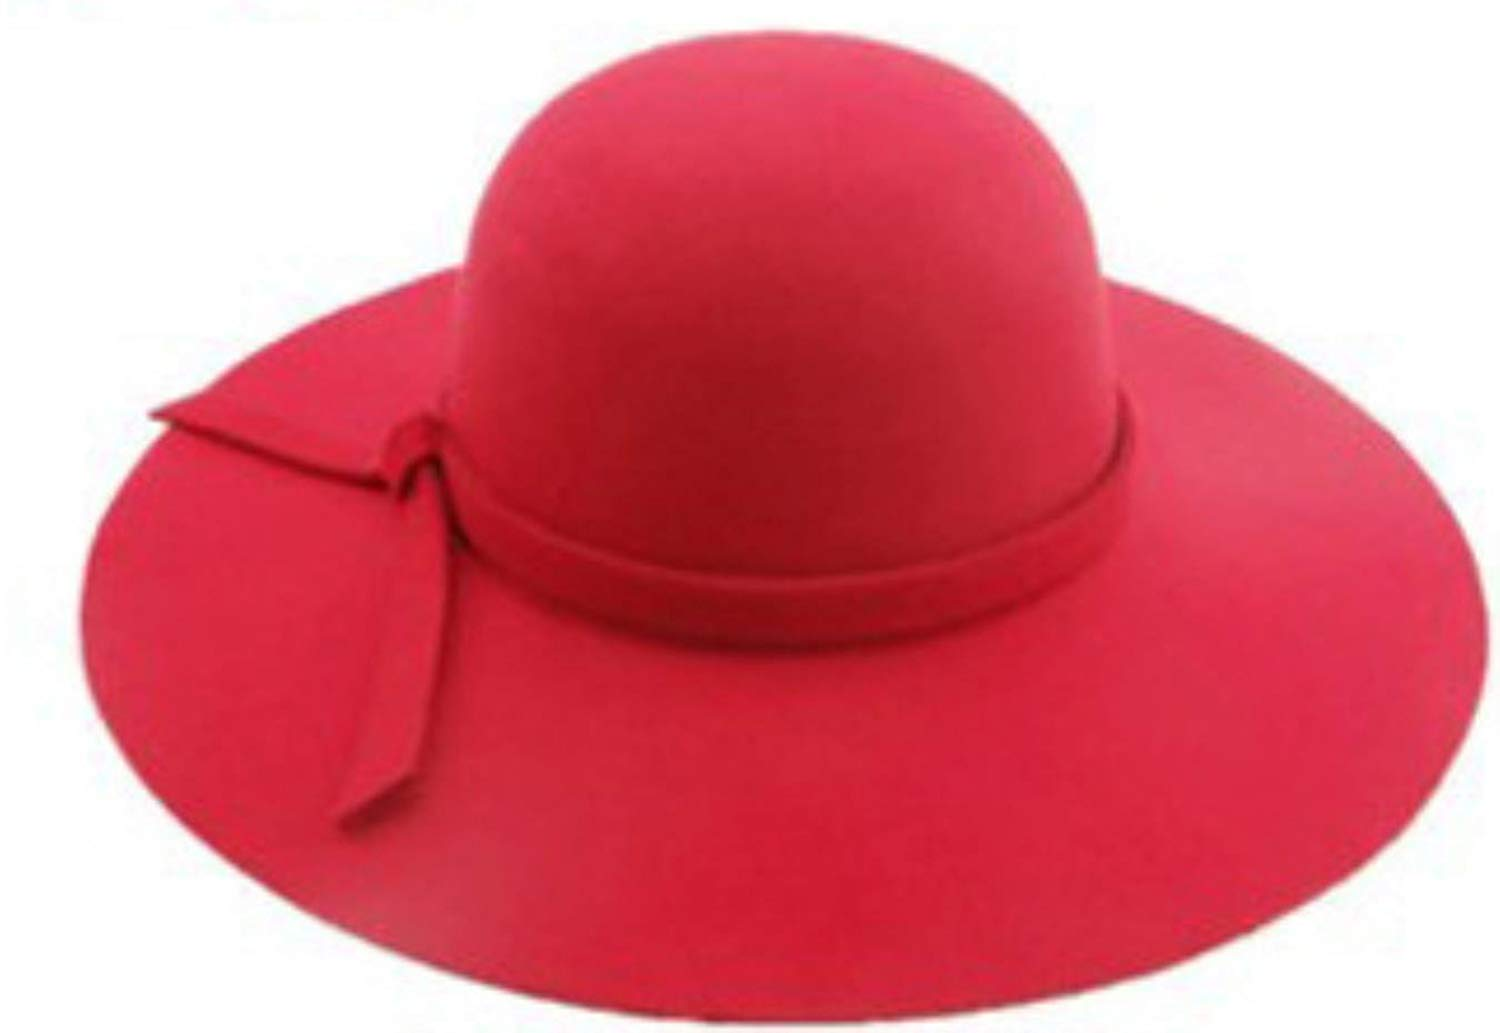 faa0e67c Get Quotations · Faux Wool Fedoras caps Style Stetson Sun Beach Hat Floppy  Style Wide Brim Foldable with tie